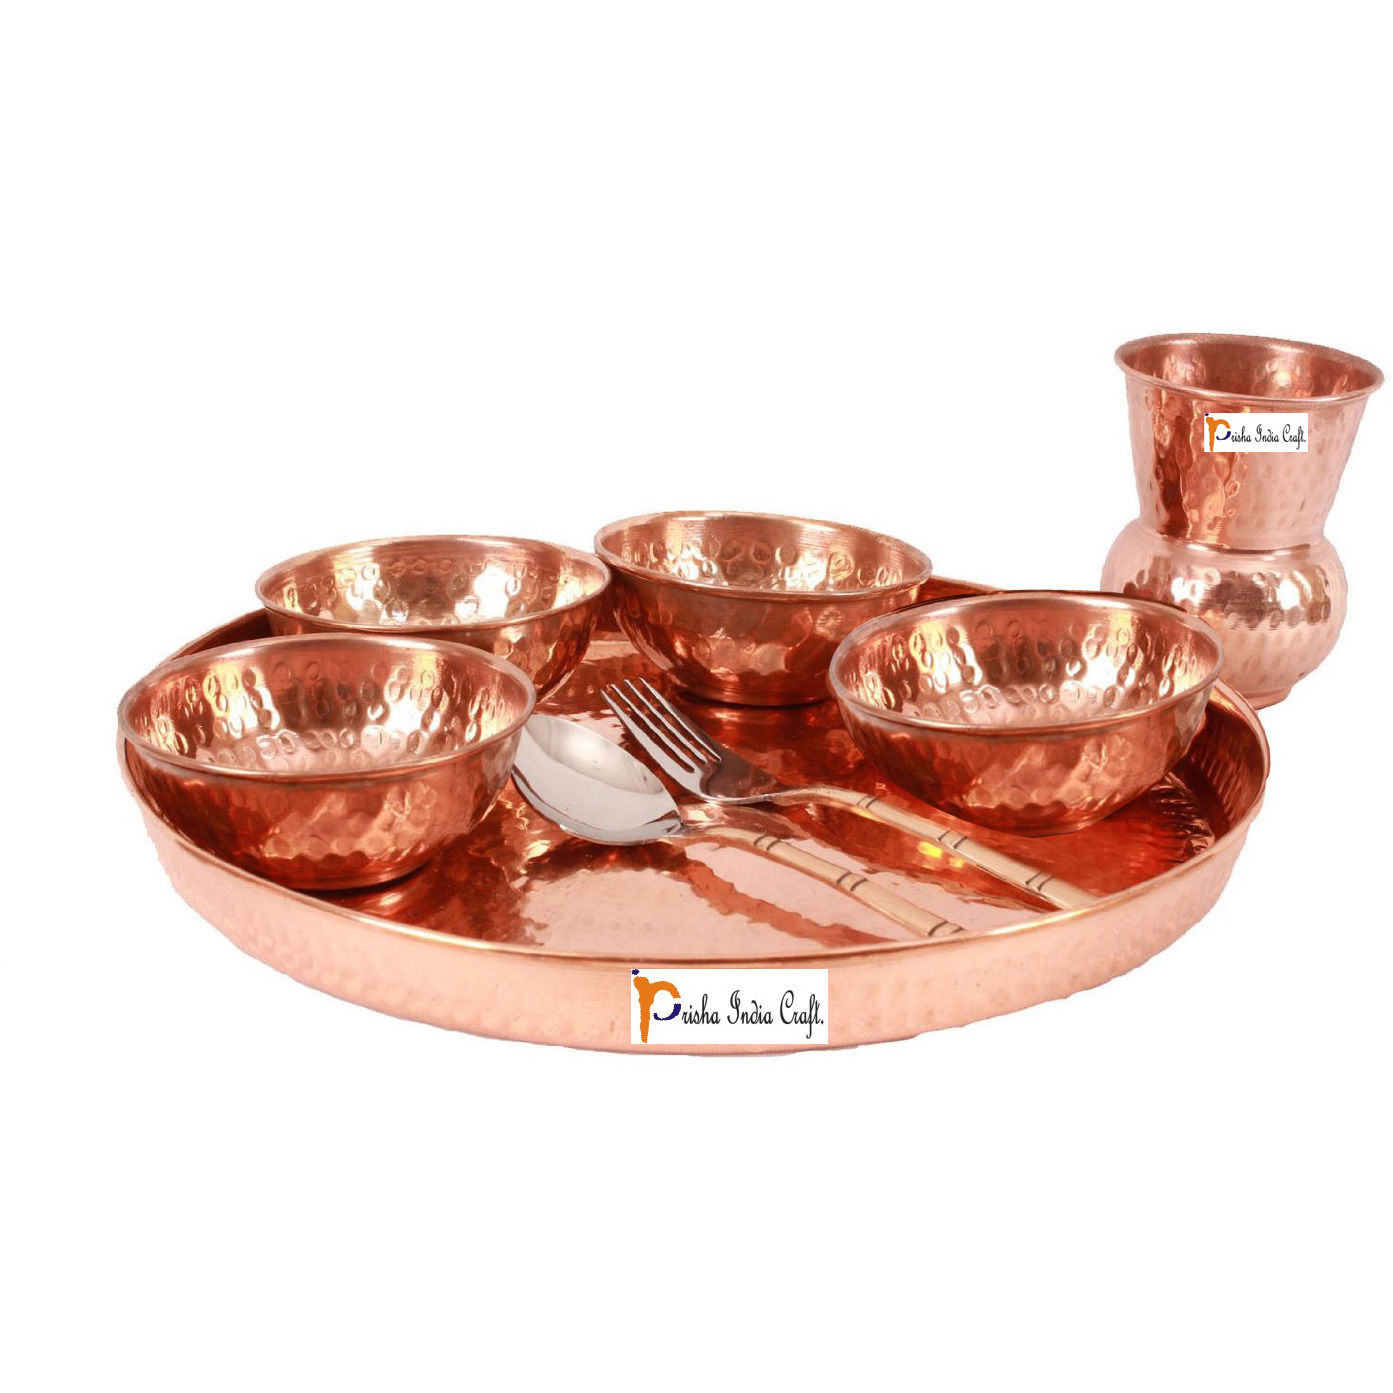 Prisha India Craft B. Set of 2 Dinnerware Traditional 100% Pure Copper Dinner Set of Thali Plate, Bowls, Glass and Spoon, Dia 12  With 1 Stainless Steel Copper Hammered Pitcher Jug - Christmas Gift